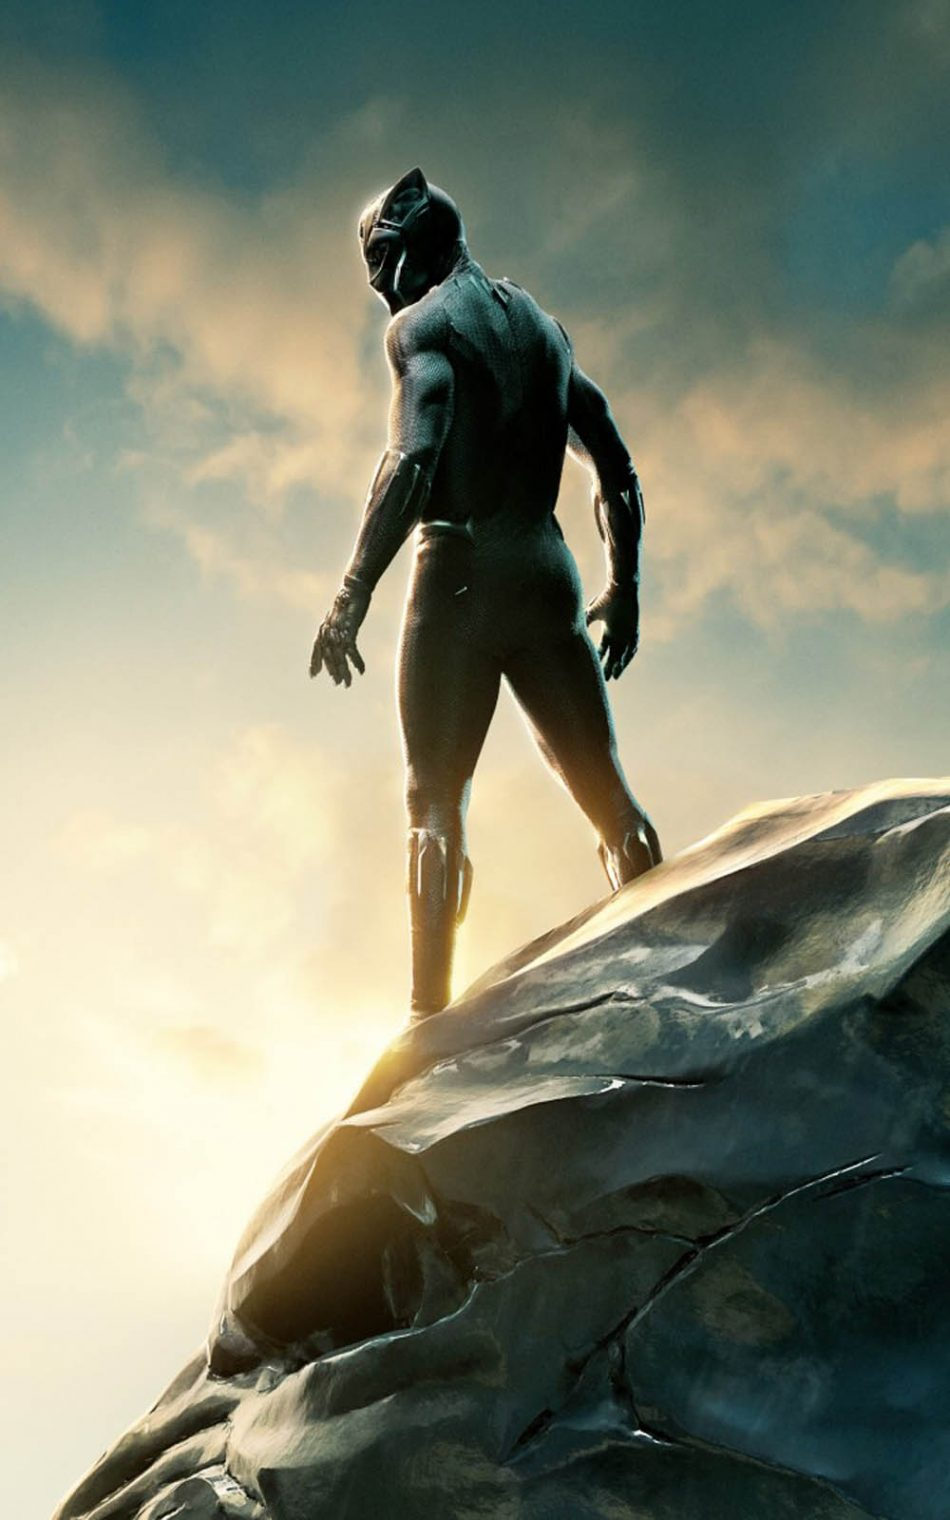 Download Black Panther 2018 Movie Free Pure 4k Ultra Hd Mobile Wallpaper